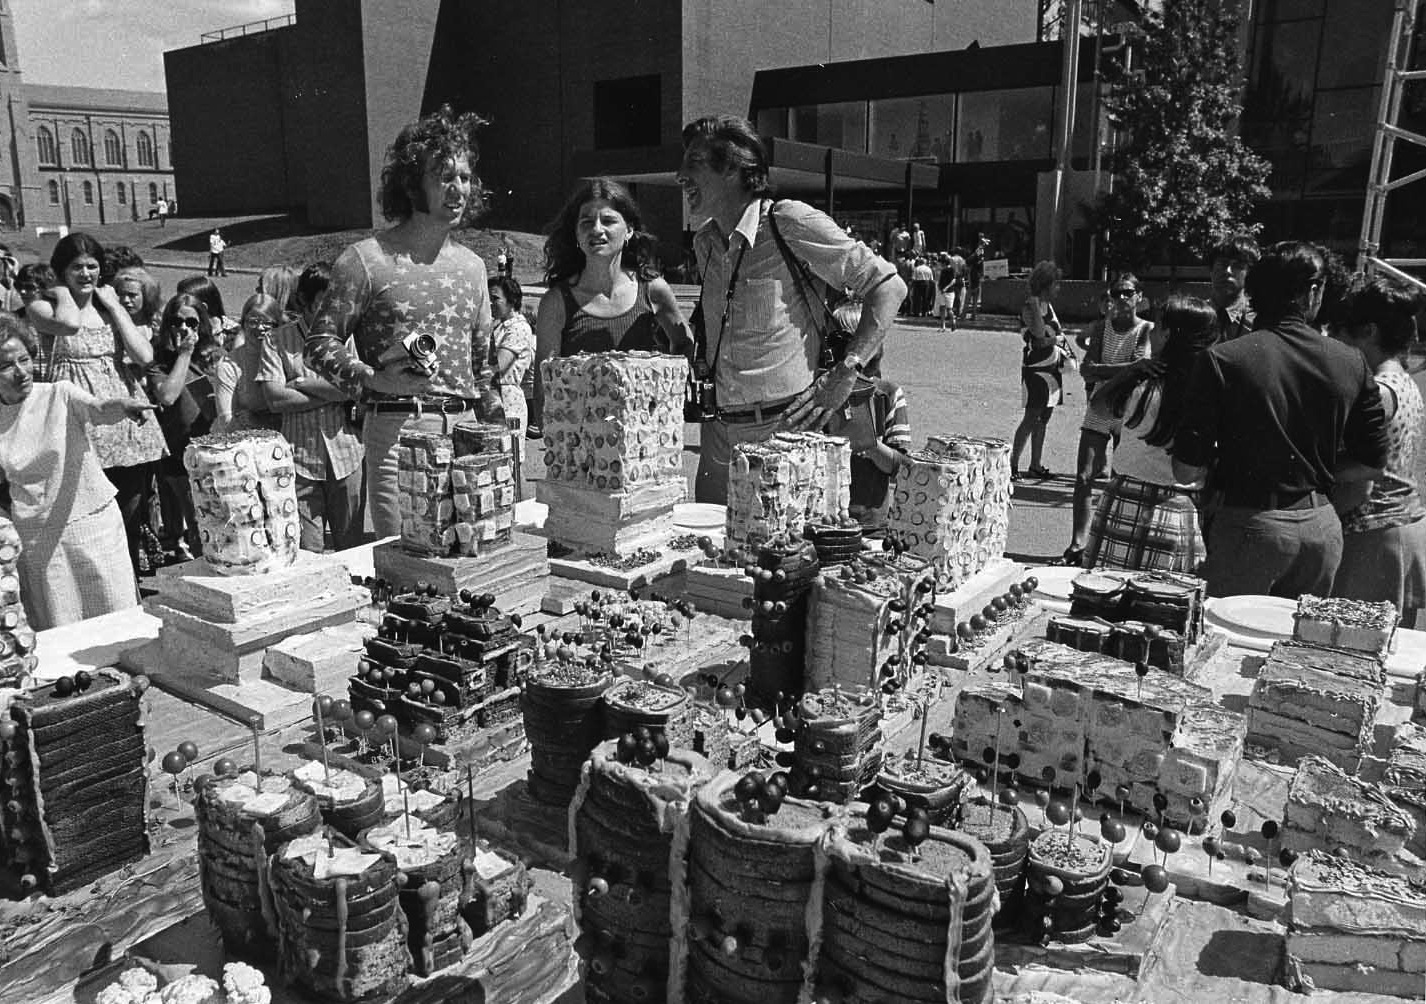 Food City by Haus-Rucker-Co. in the Armory Gardens, June 13, 1971. Tom Berthiaume for Walker Art Center